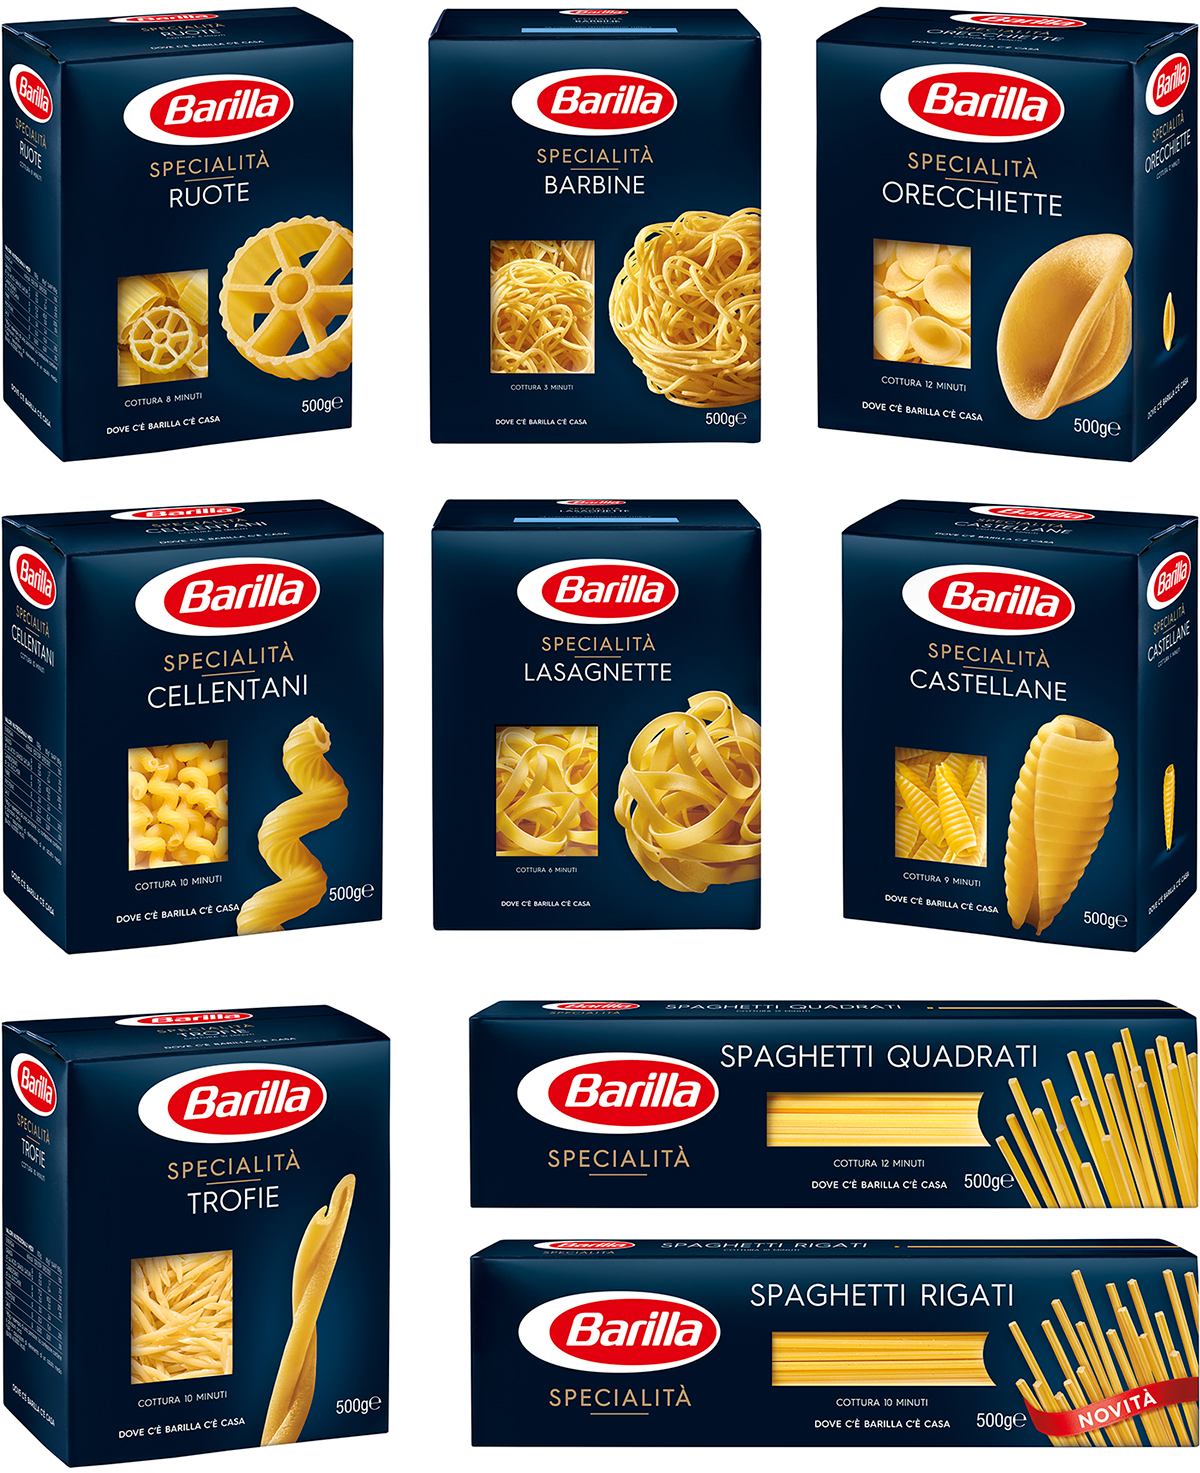 barilla jitd program Diagnose the underlying causes of the difficulties that jitd program was created to solve what are the benefits of this program the main reason behind the proposal of jitd program is to correct the demand fluctuations from barilla's immediate distributors.